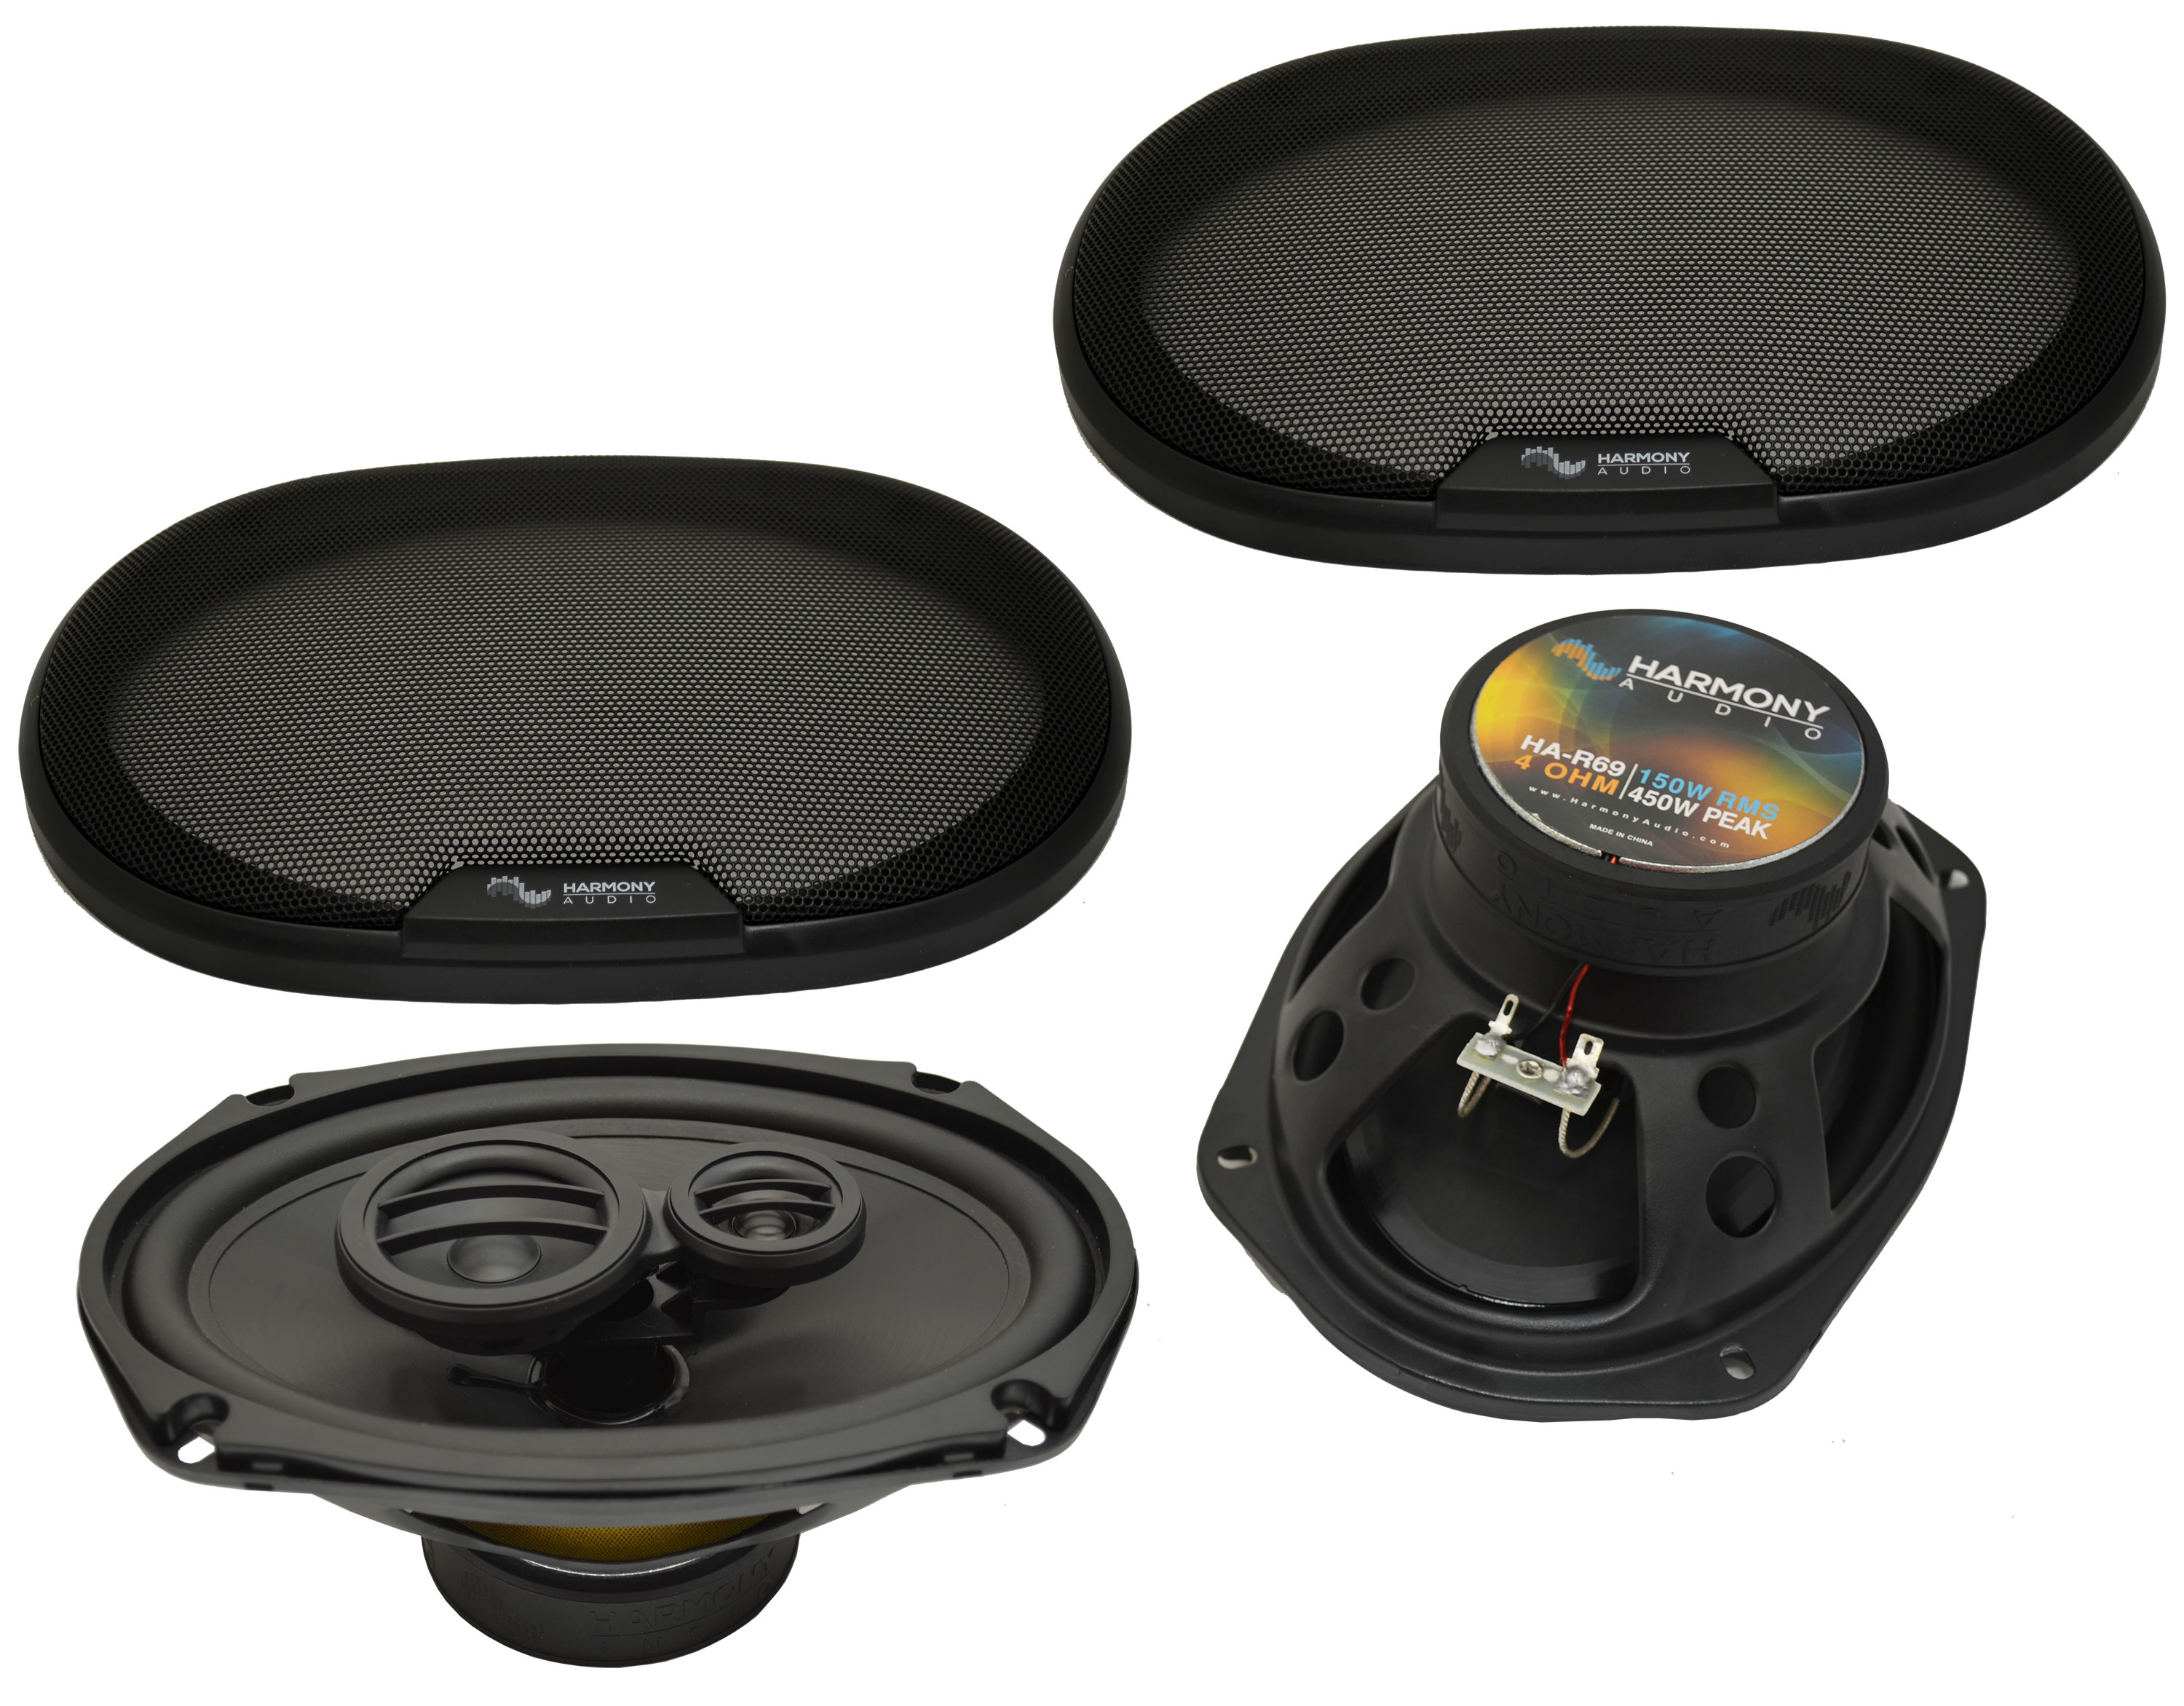 Fits Buick Le Sabre 2000-2005 Rear Deck Replacement Harmony HA-R69 Speakers New